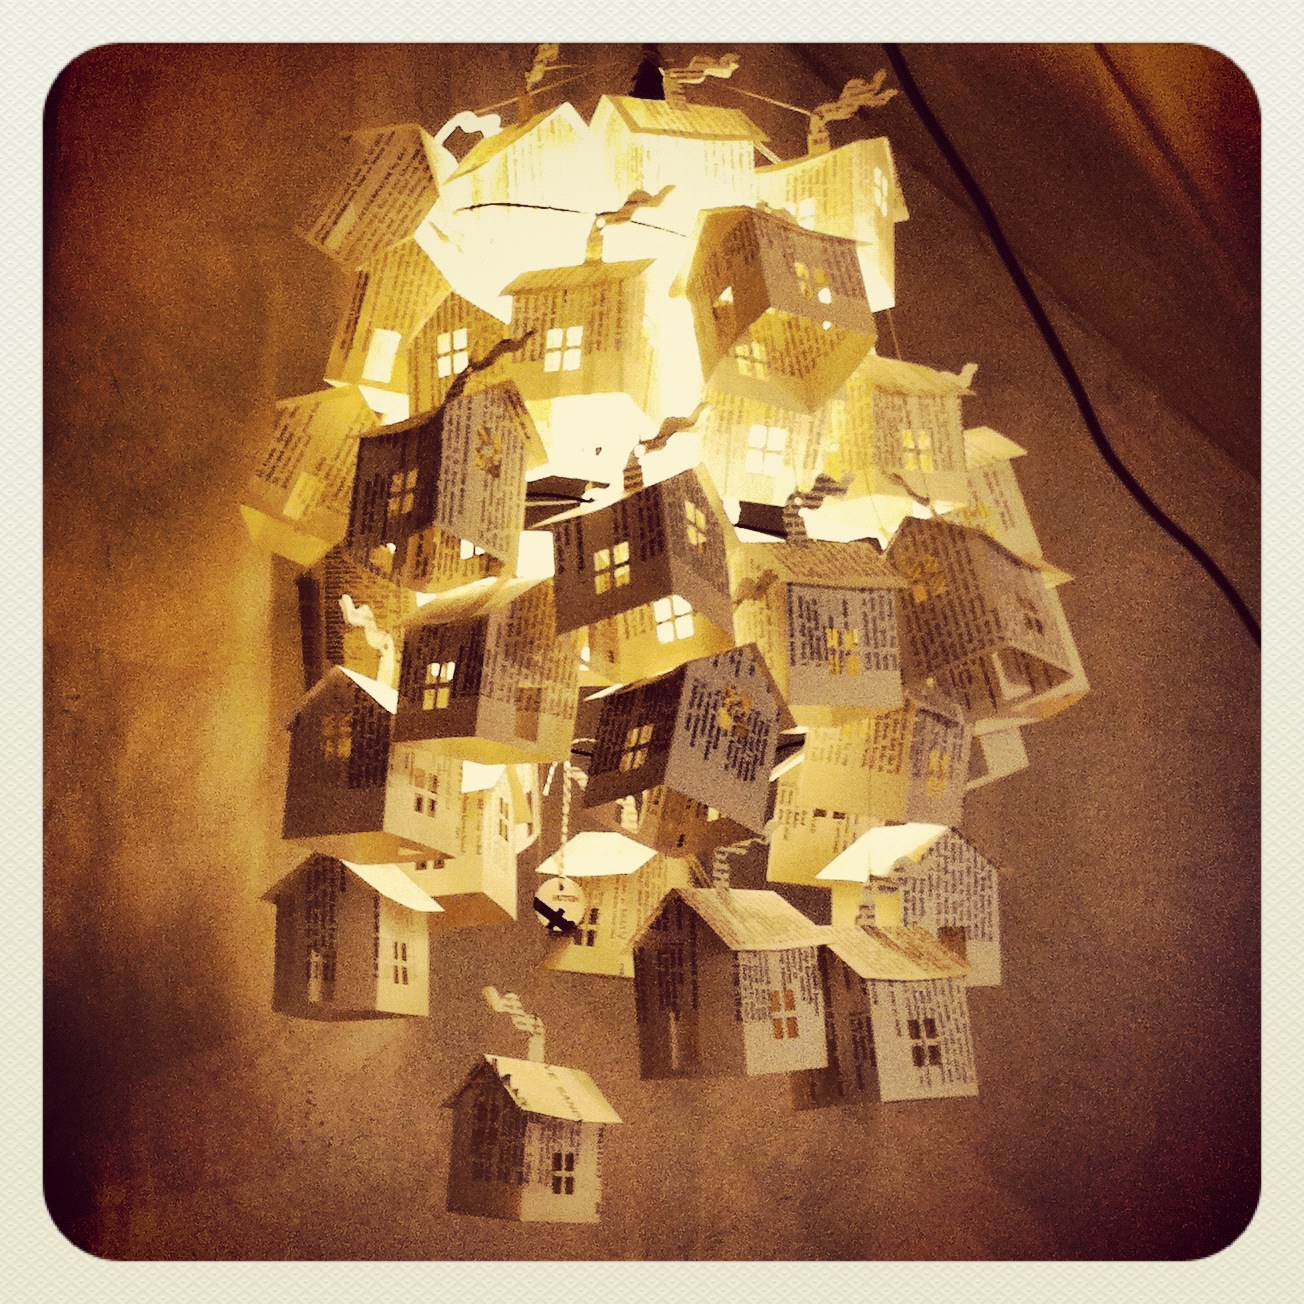 Hutch studio paper house lights at hutch - How to reuse old clothes well tailored ideas ...